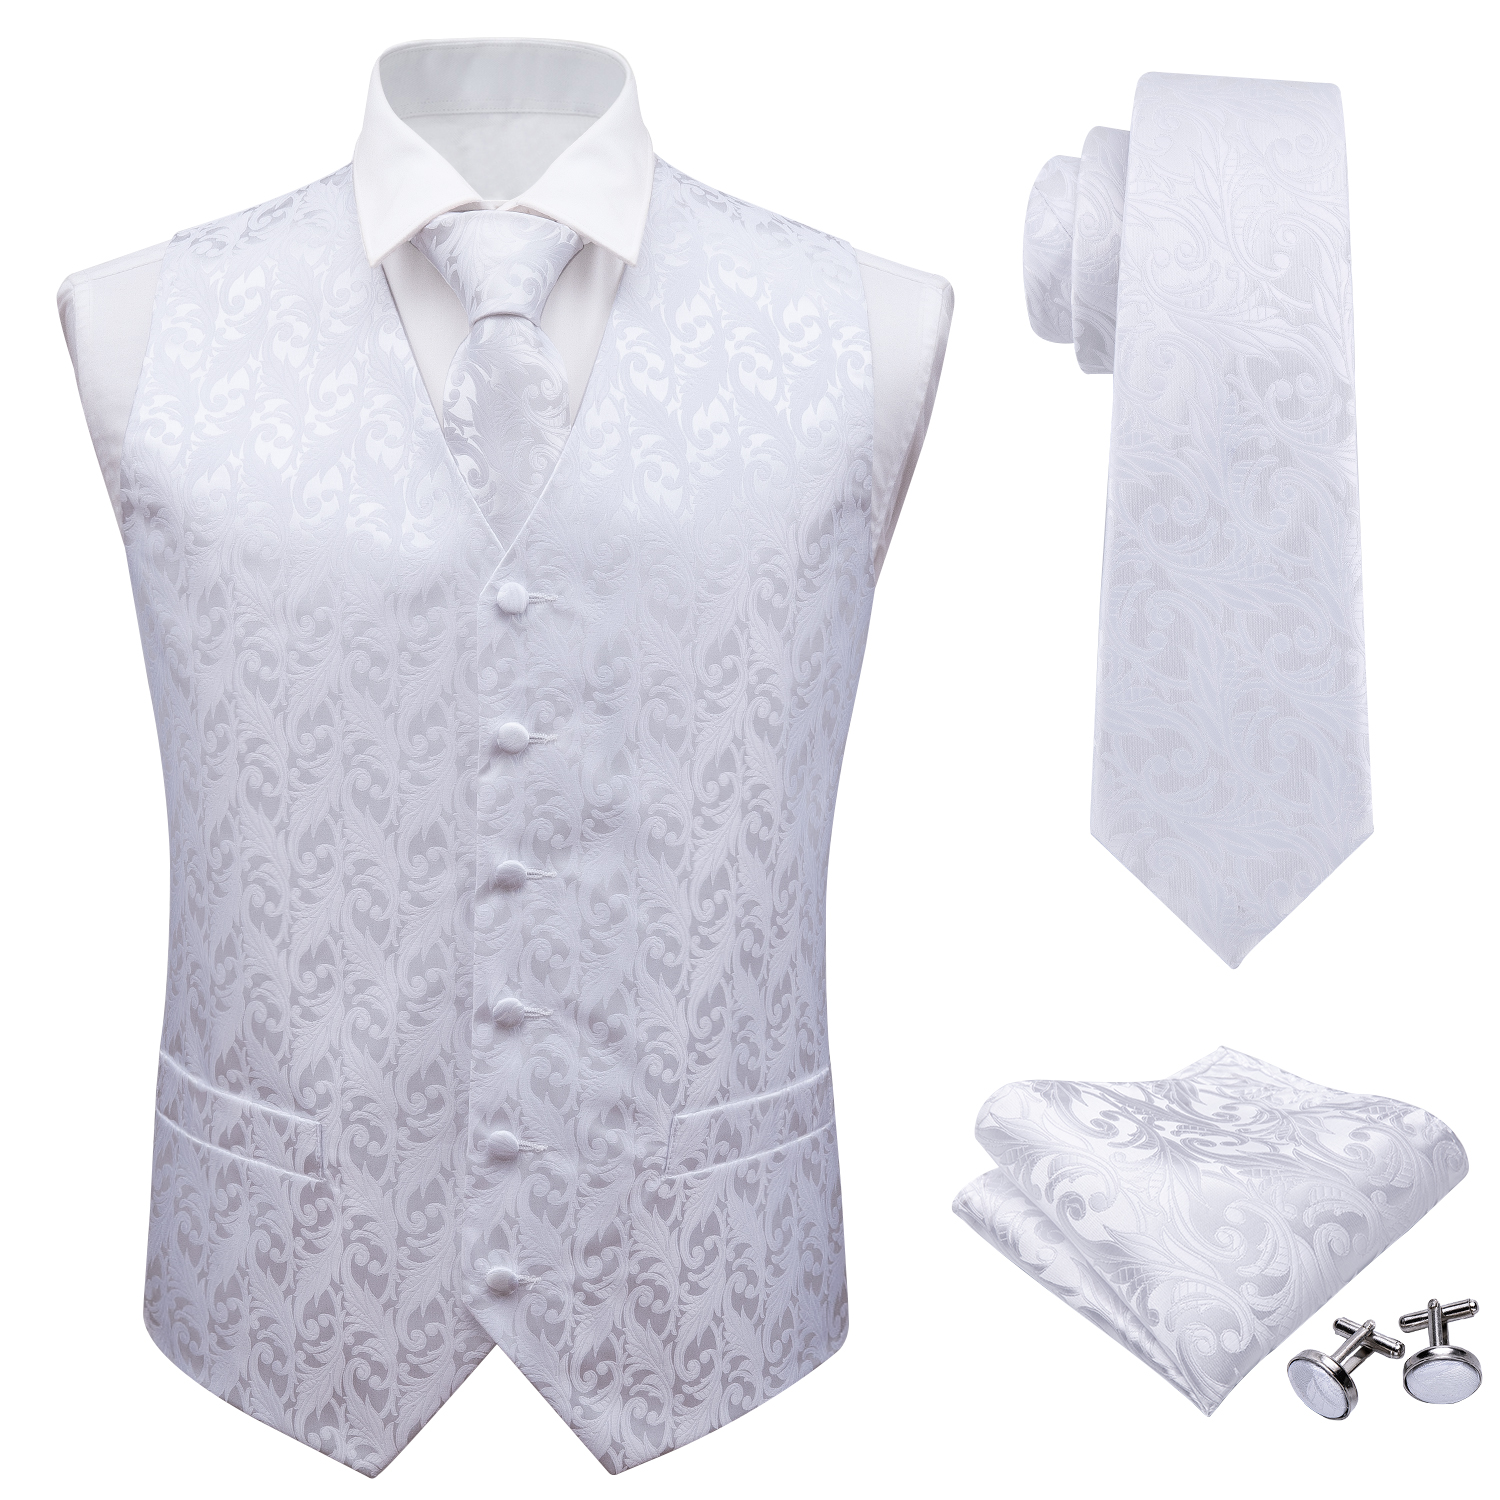 Barry.Wang Mens Classic White Floral Jacquard Silk Waistcoat Vests Handkerchief Party Wedding Tie Vest Suit Pocket Square Set